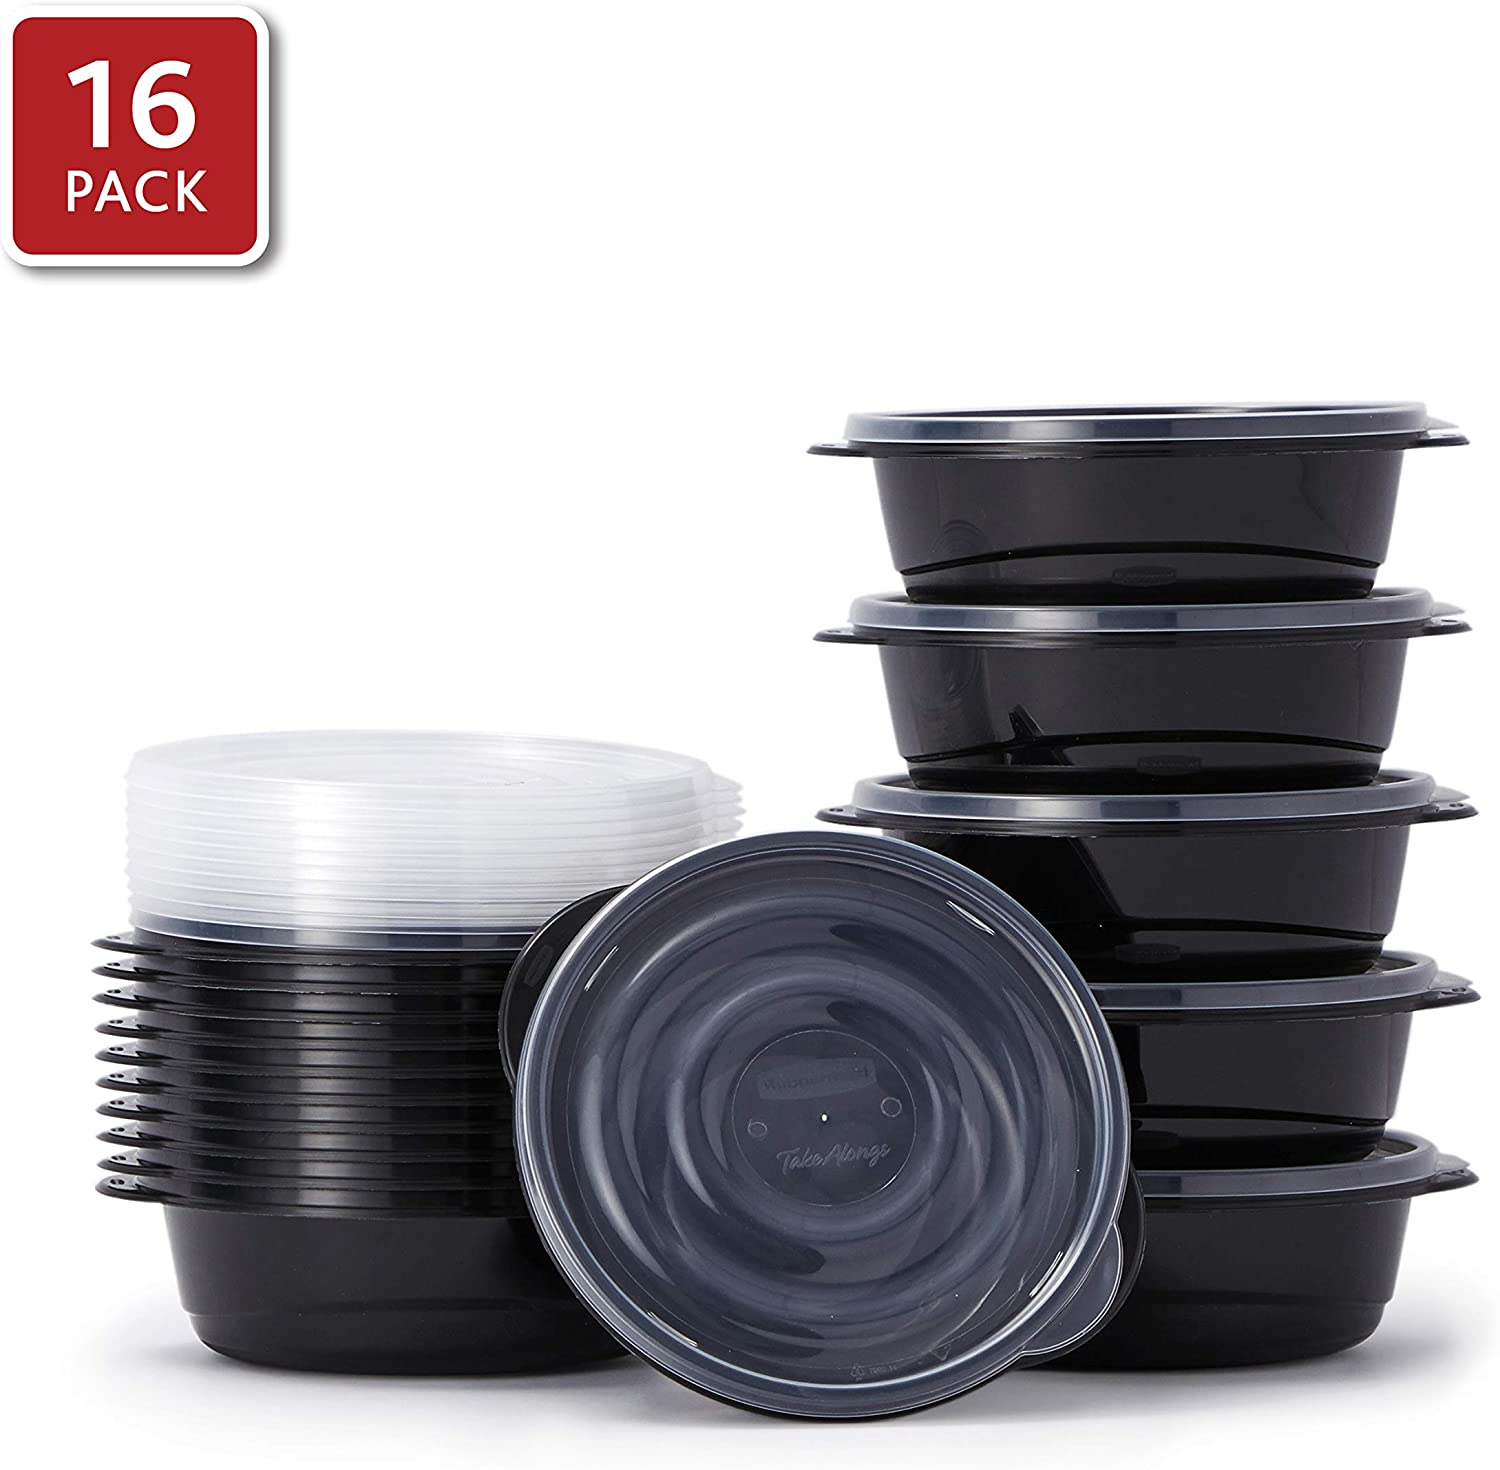 Rubbermaid 2108372 TakeAlongs Food Storage Single Base, 5 Cup, Set of 16 (32 Pieces Total) | Meal Prep Containers, Lunch for Adults & Kids, 16-Pack, Black